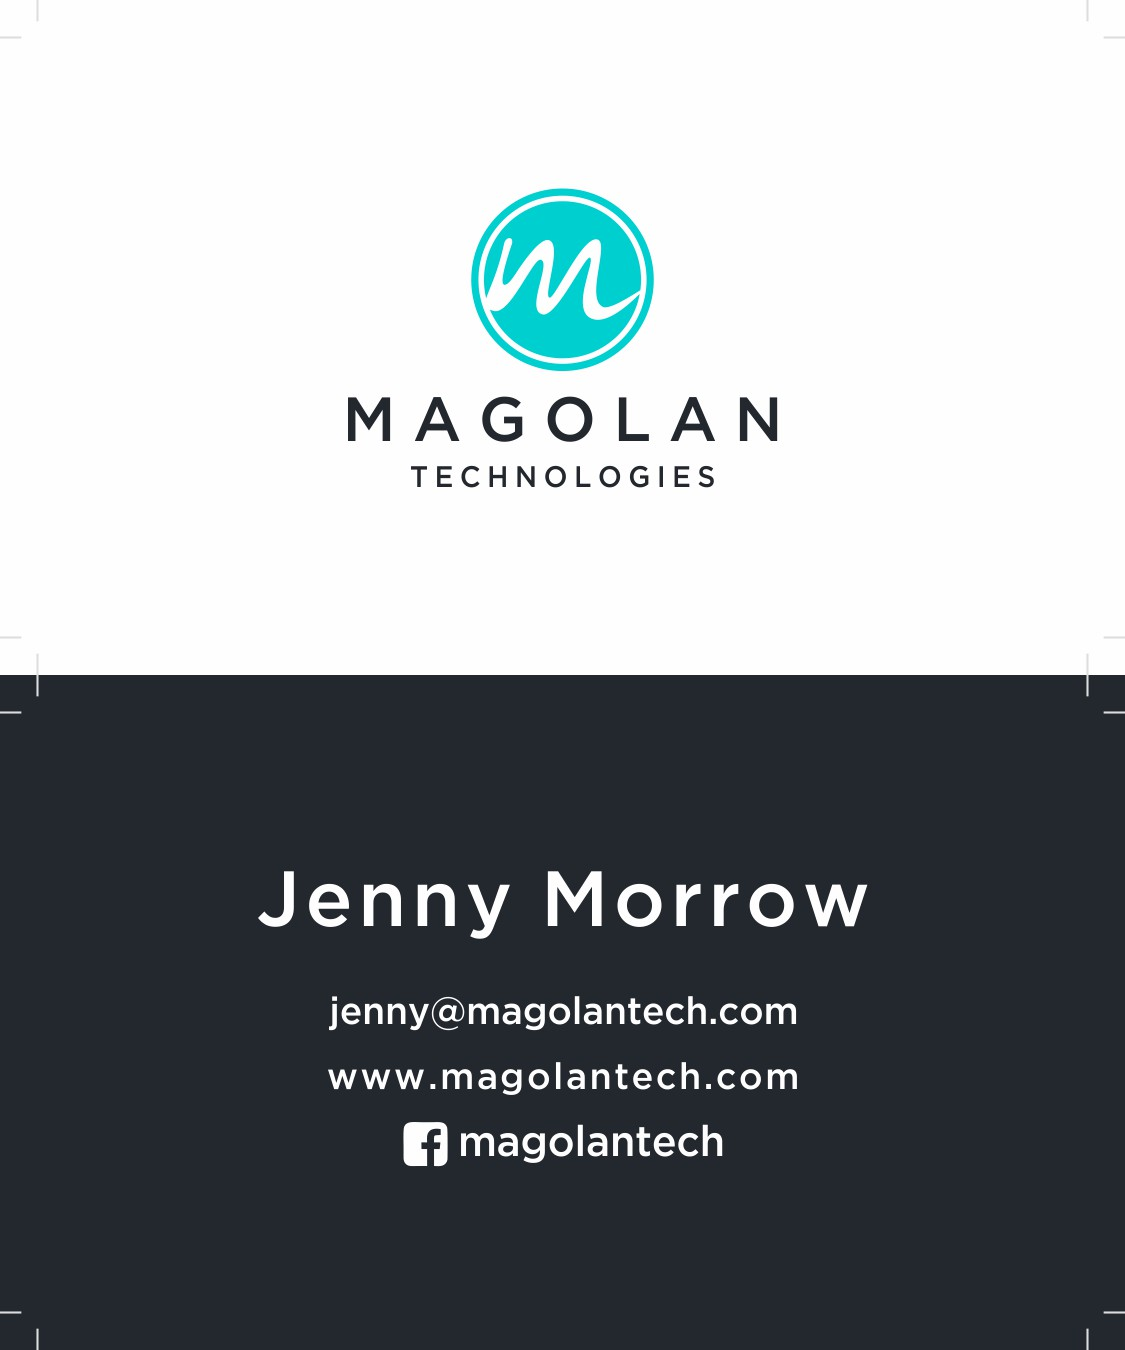 Logo and Business Card Design need for Tech Startup